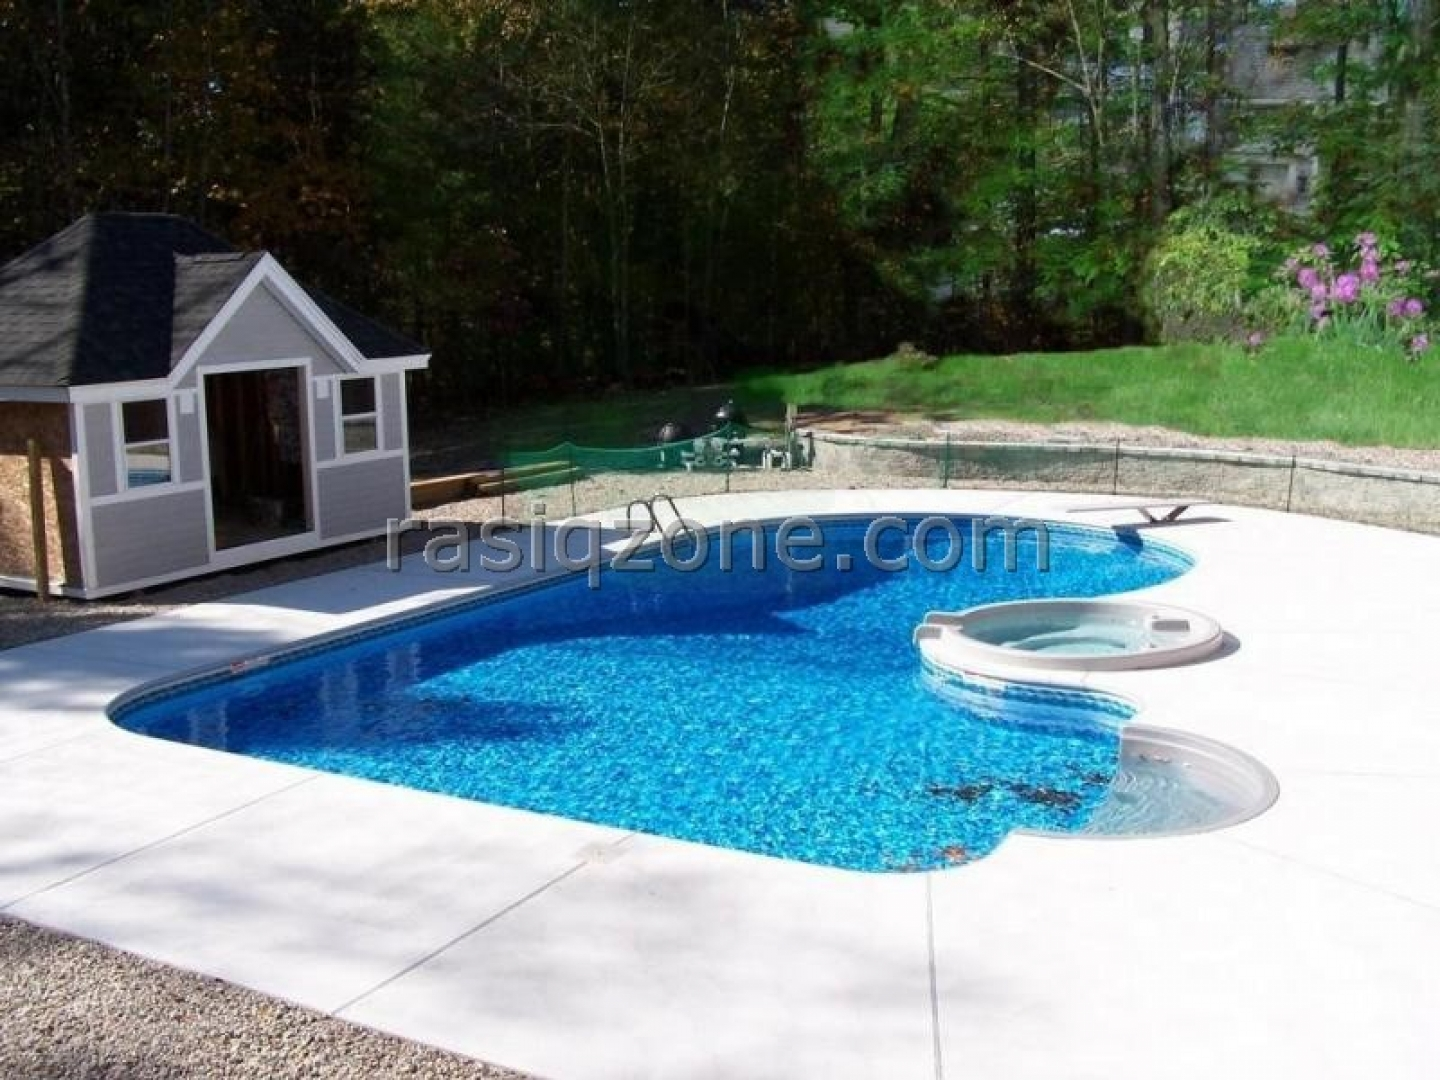 Awesome Backyard Pools · Backyard Designs With Pools